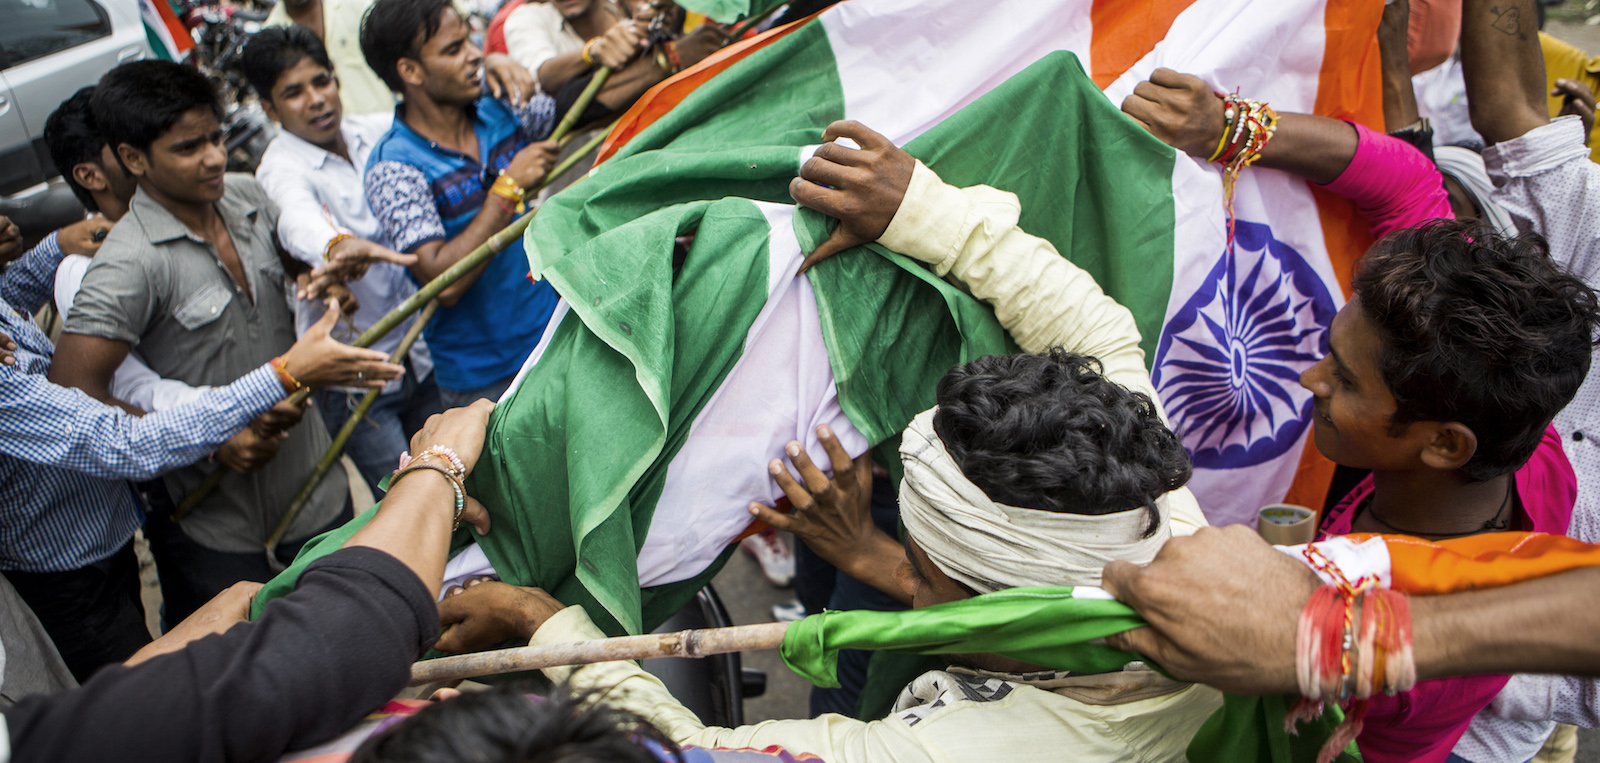 Pre - Election Unrest in India